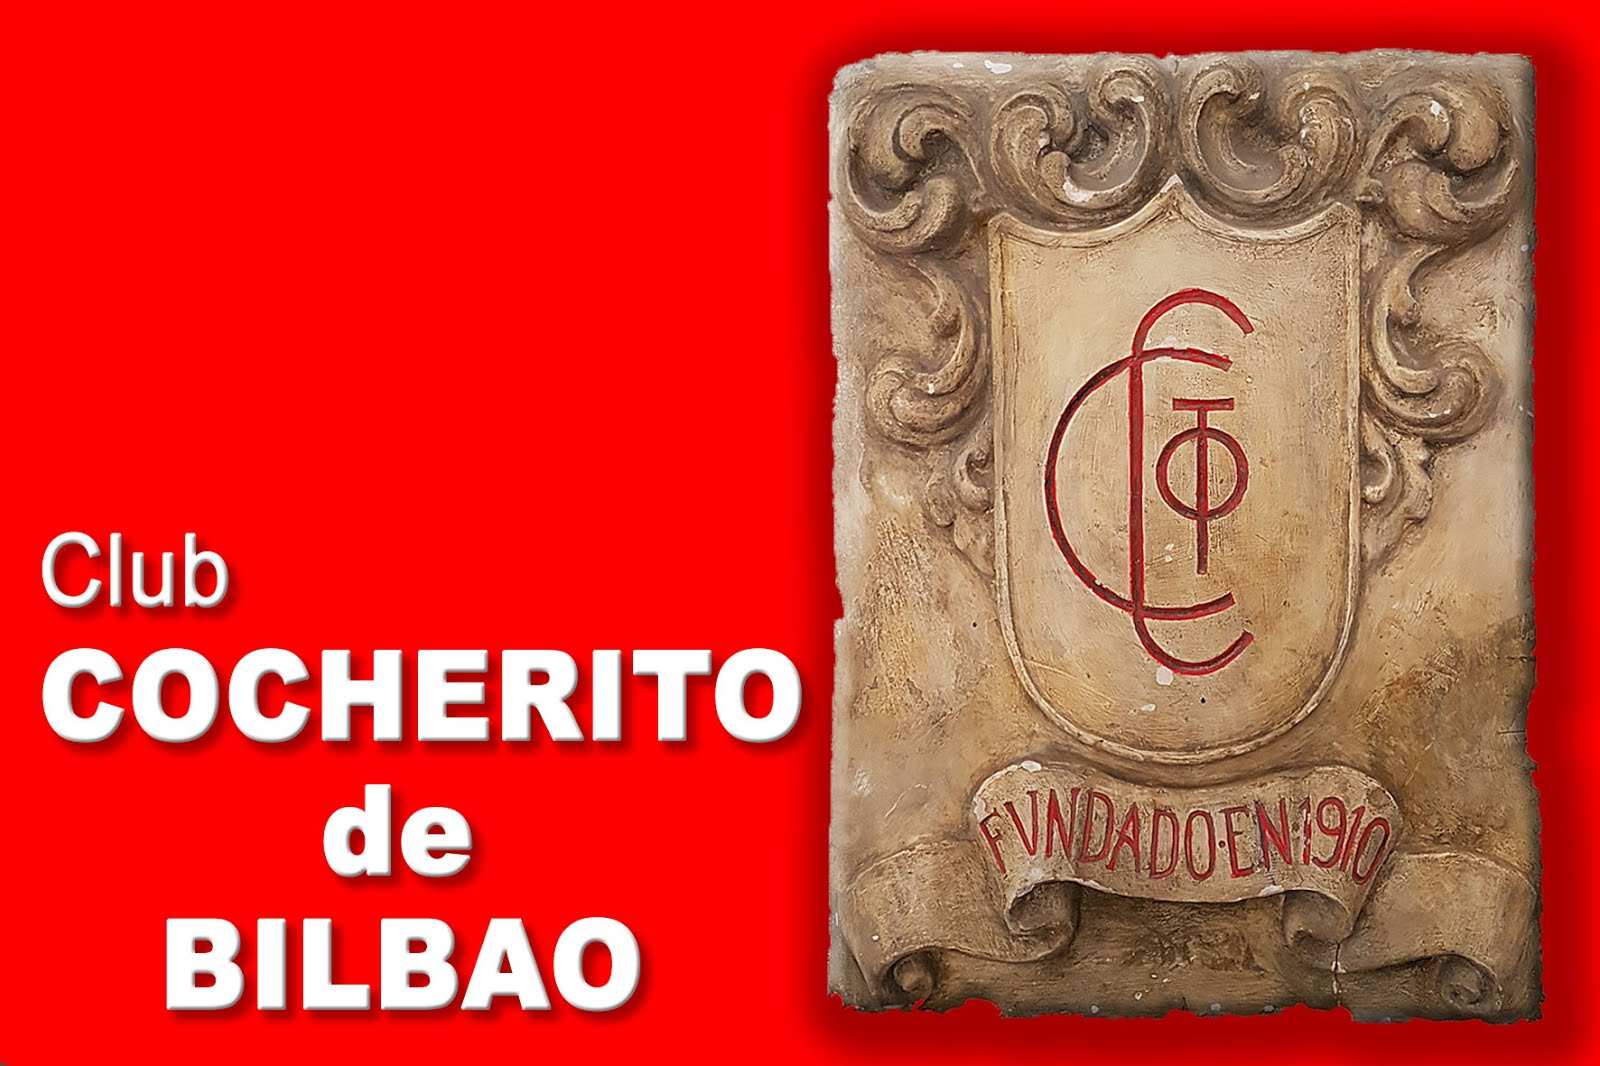 Club COCHERITO de BILBAO